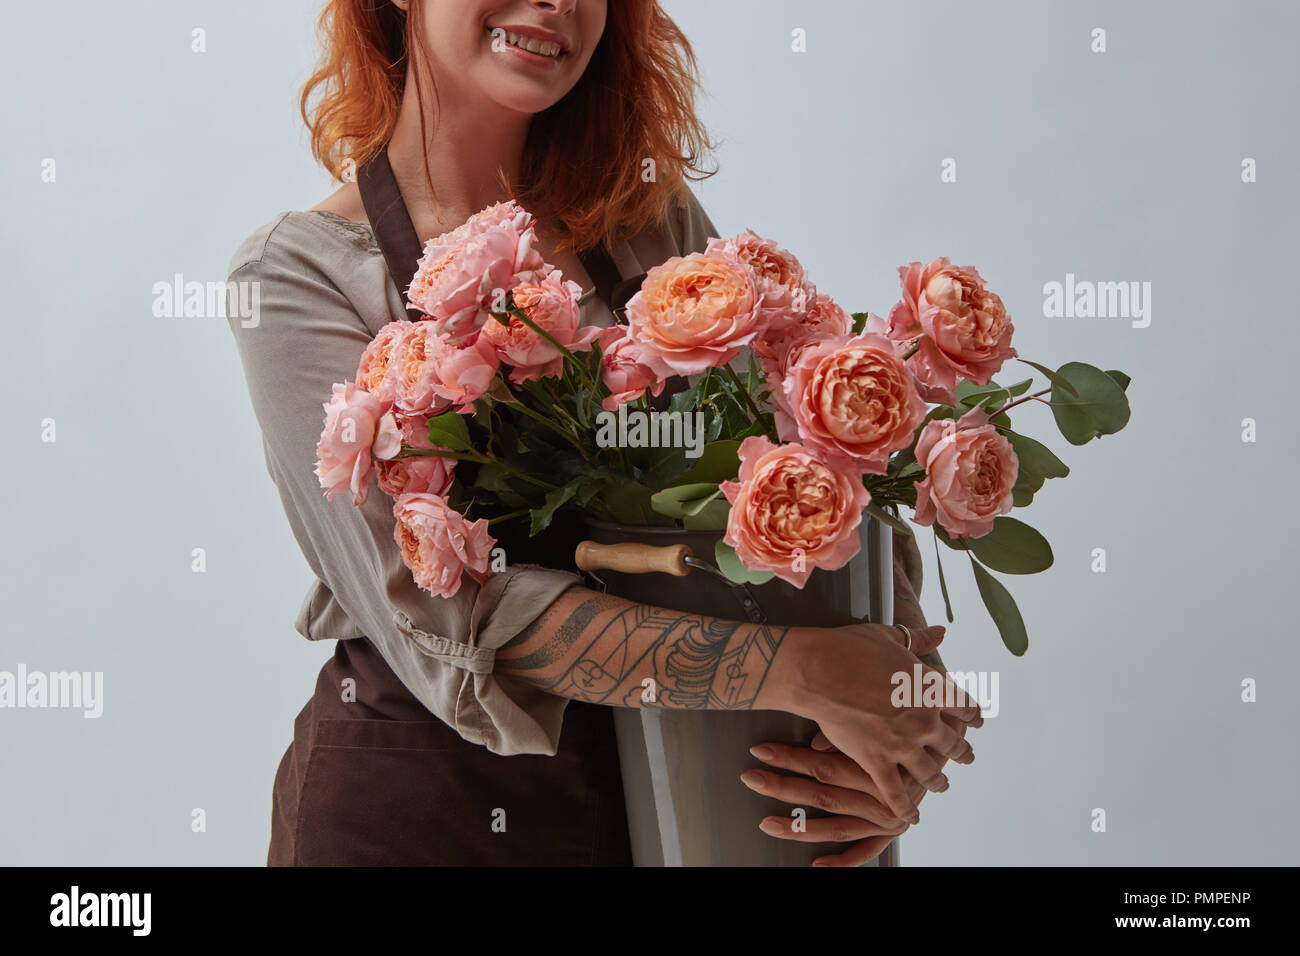 Young Red Haired Girl With A Tattoo Holding A Bouquet Of Pink Roses